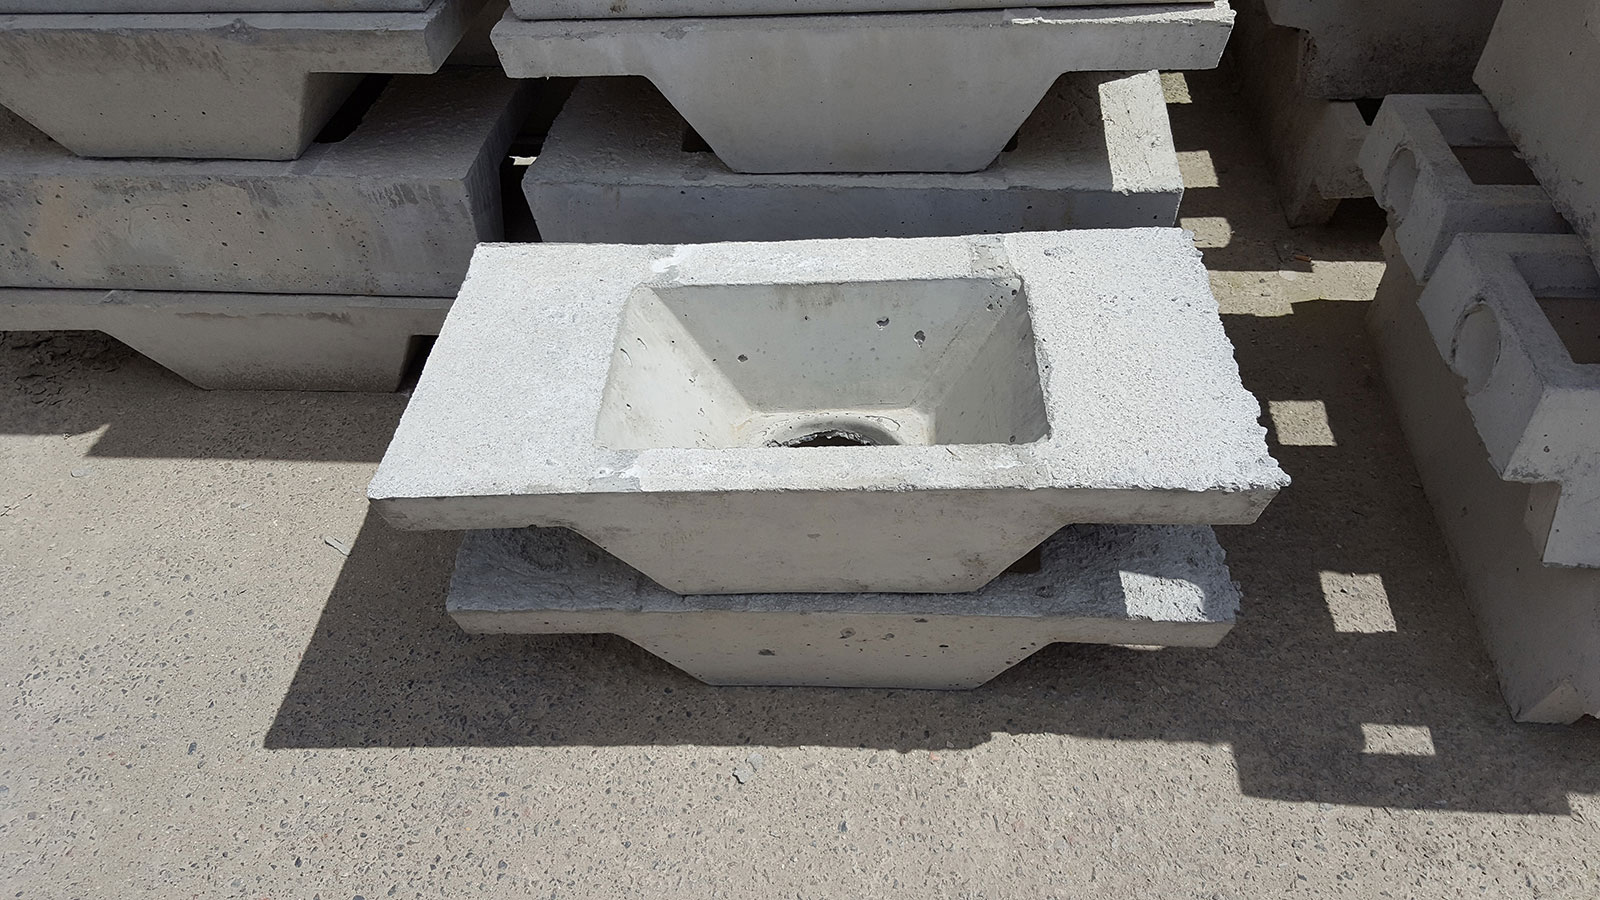 Concrete Block for 4x4 Post | Precast Concrete Piers | Precast Concrete Post Footings